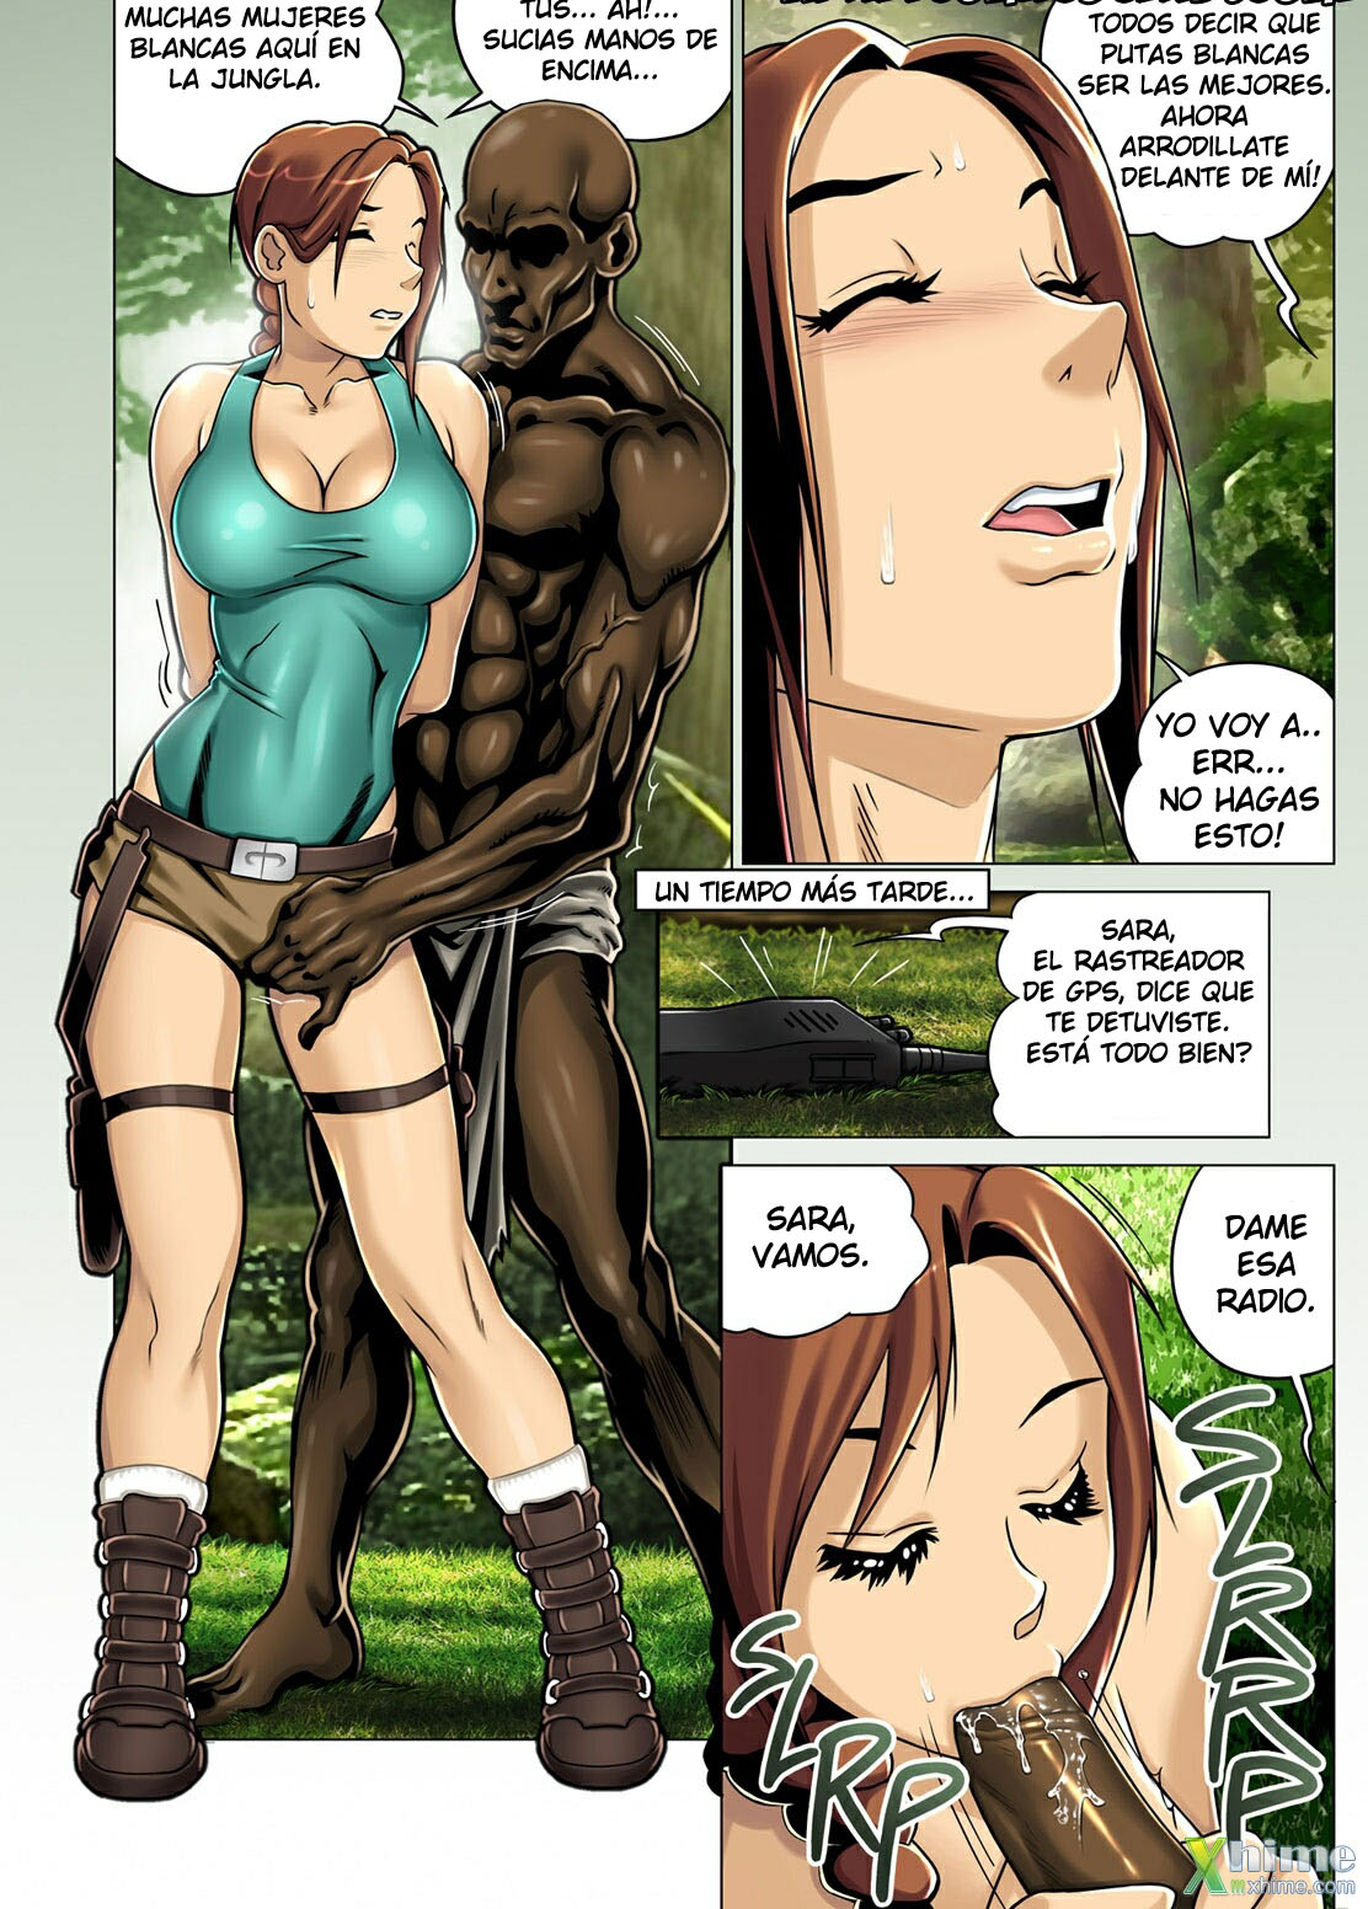 Lara croft cartoon porno naked images